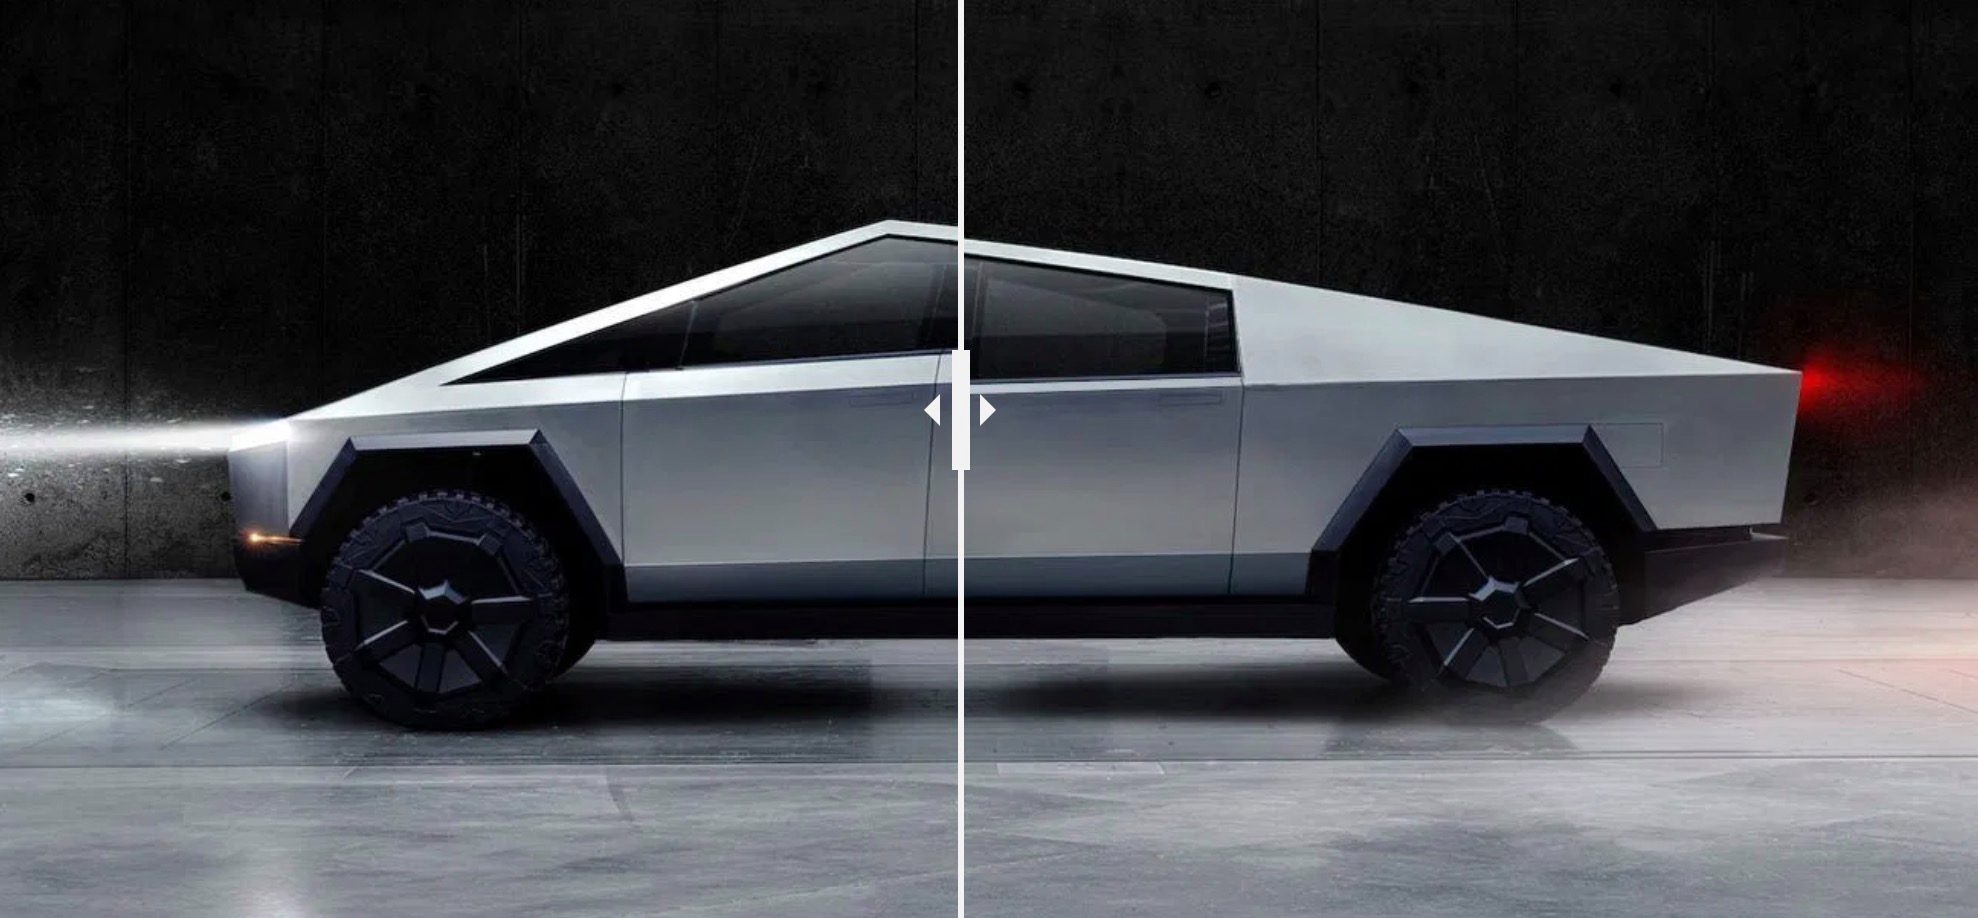 Tesla unveils updated Cybertruck electric truck design in 'a month or so'